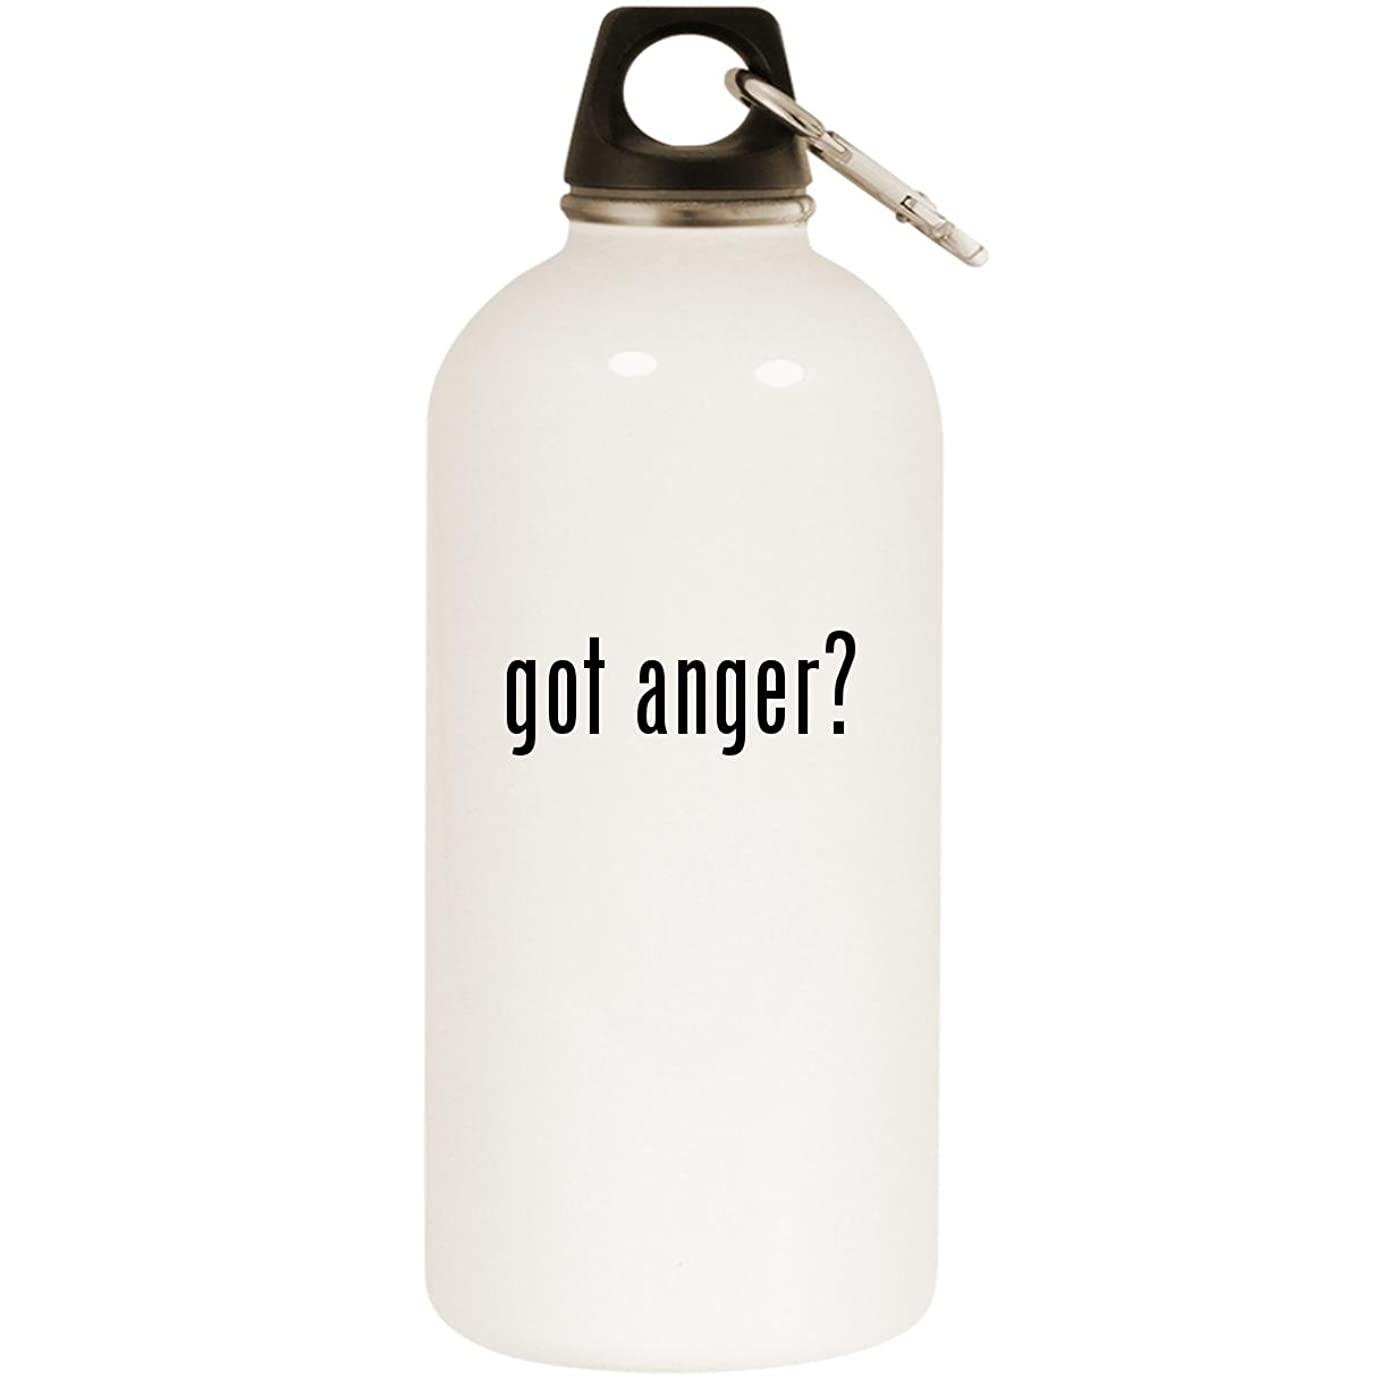 Molandra Products got Anger? - White 20oz Stainless Steel Water Bottle with Carabiner